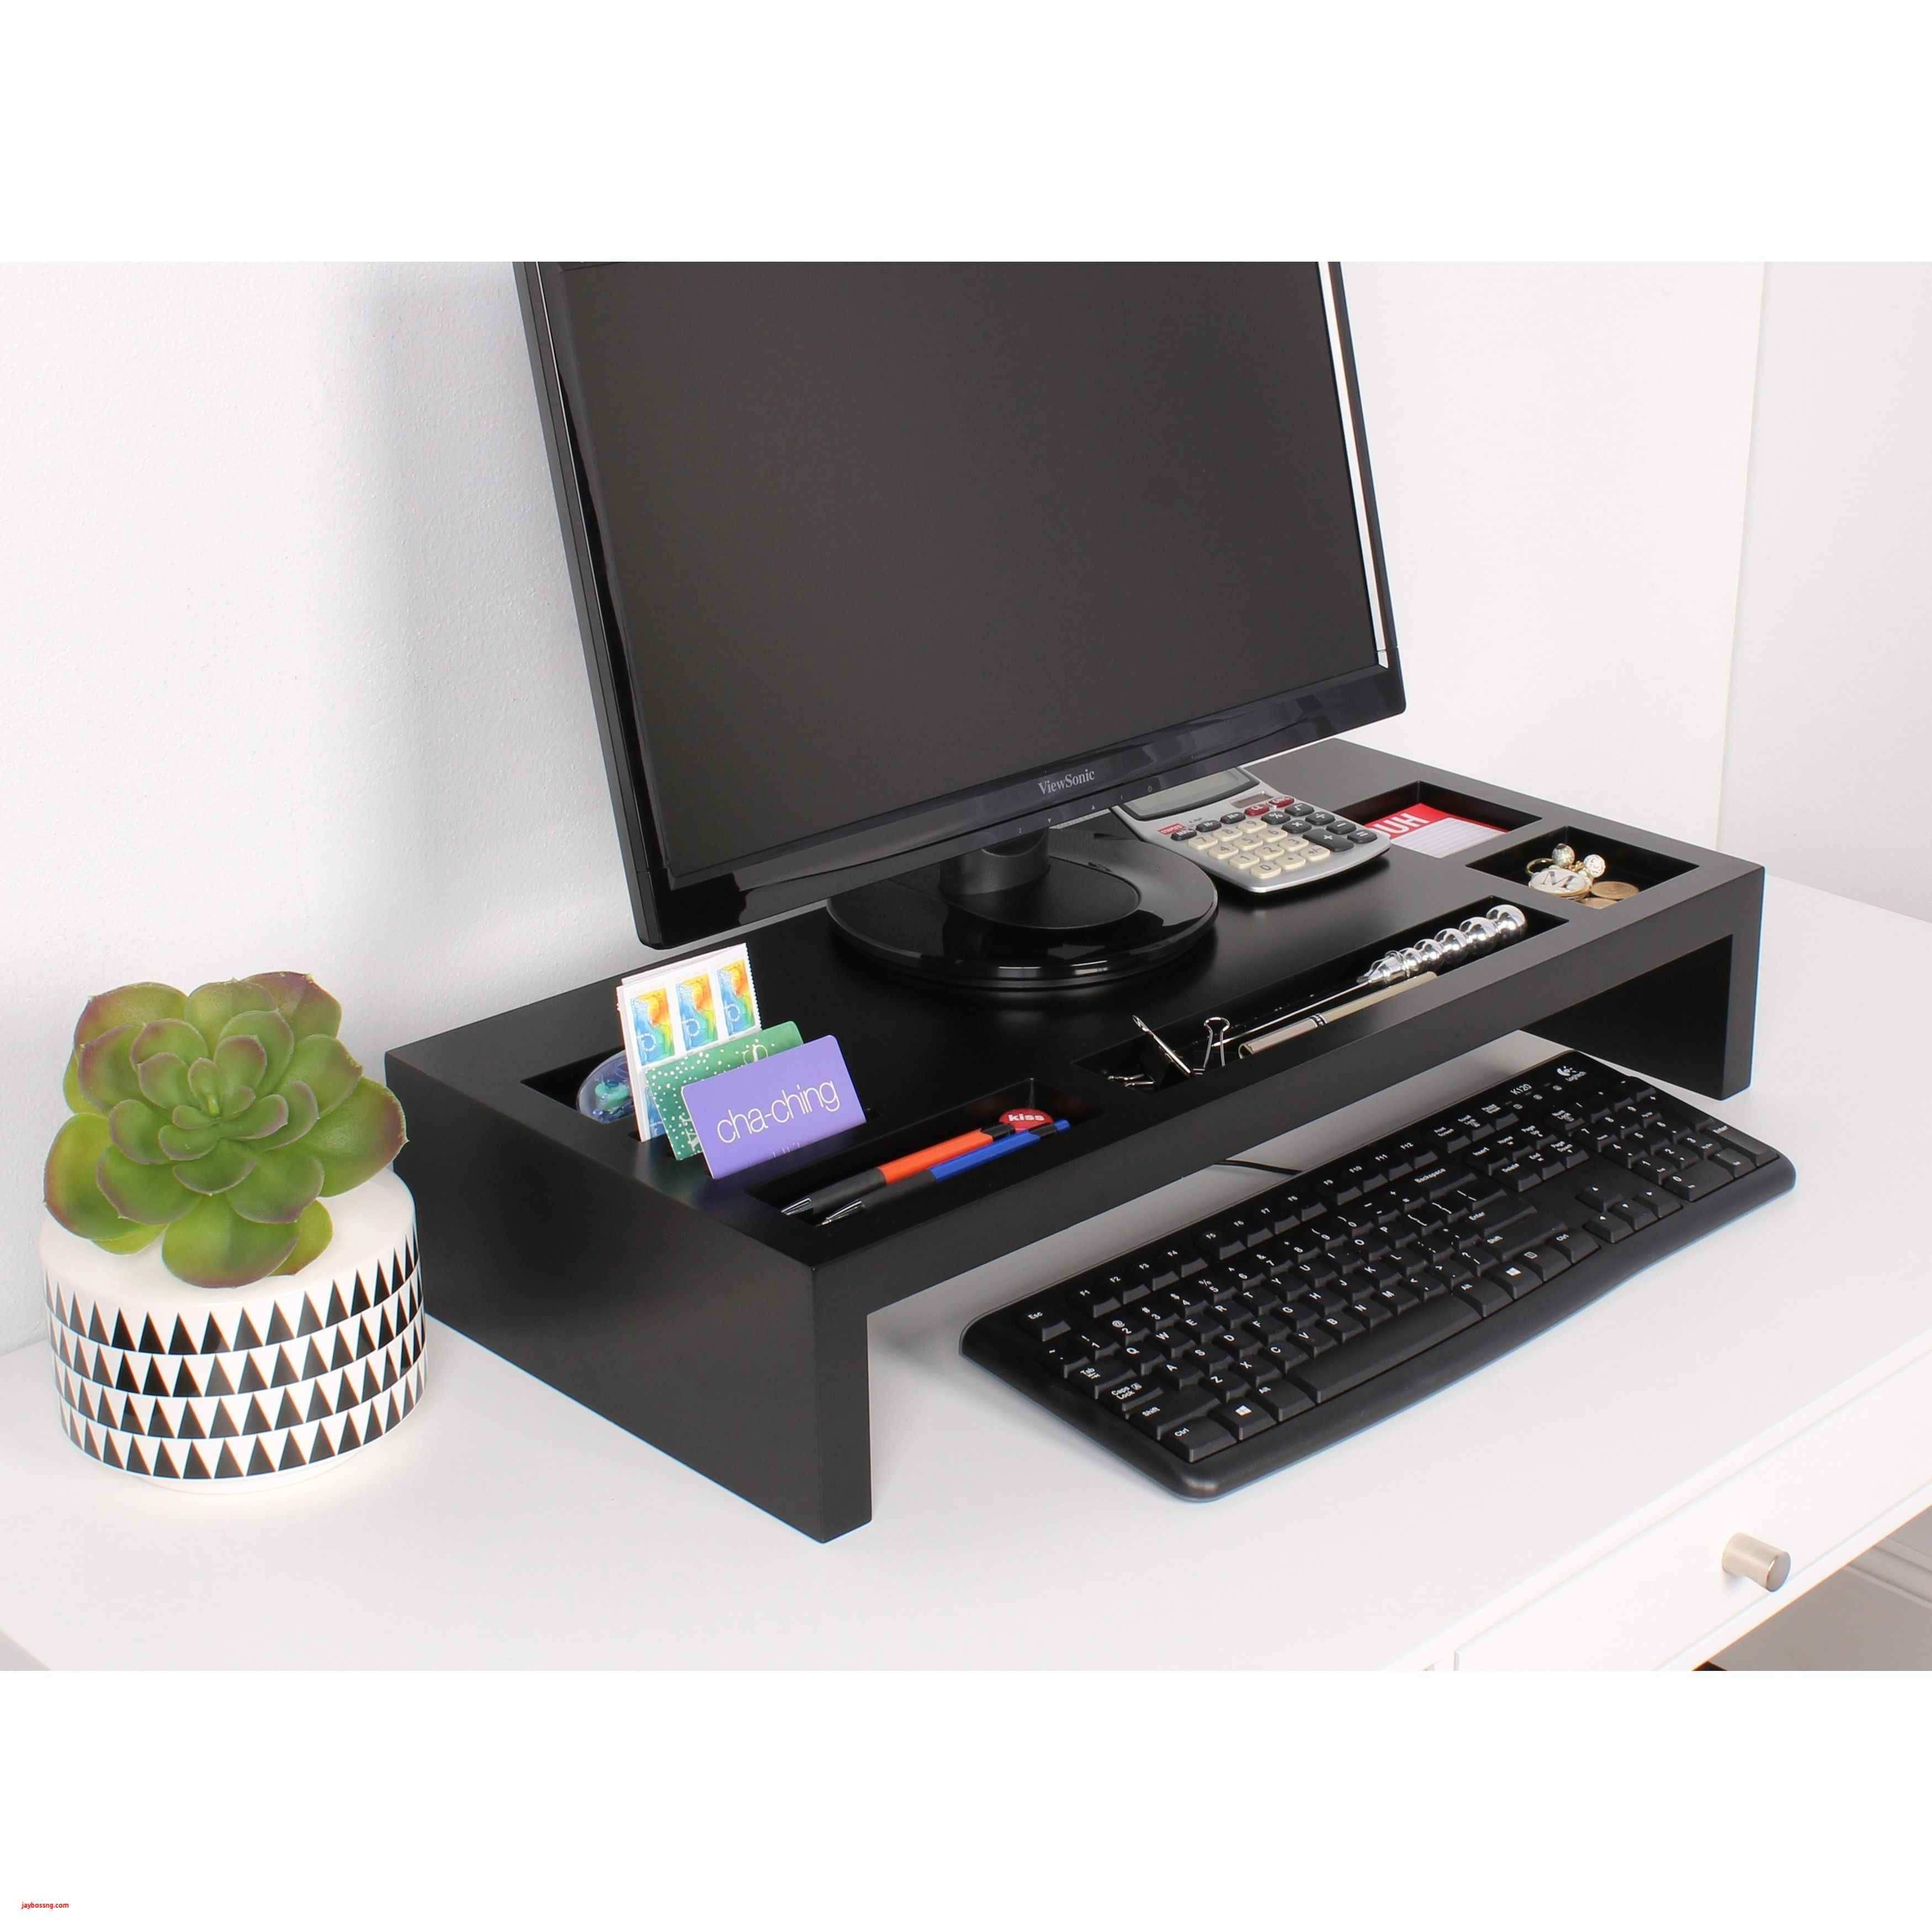 Cool puter Desk Body Into Wooden Puter Desk Maintain